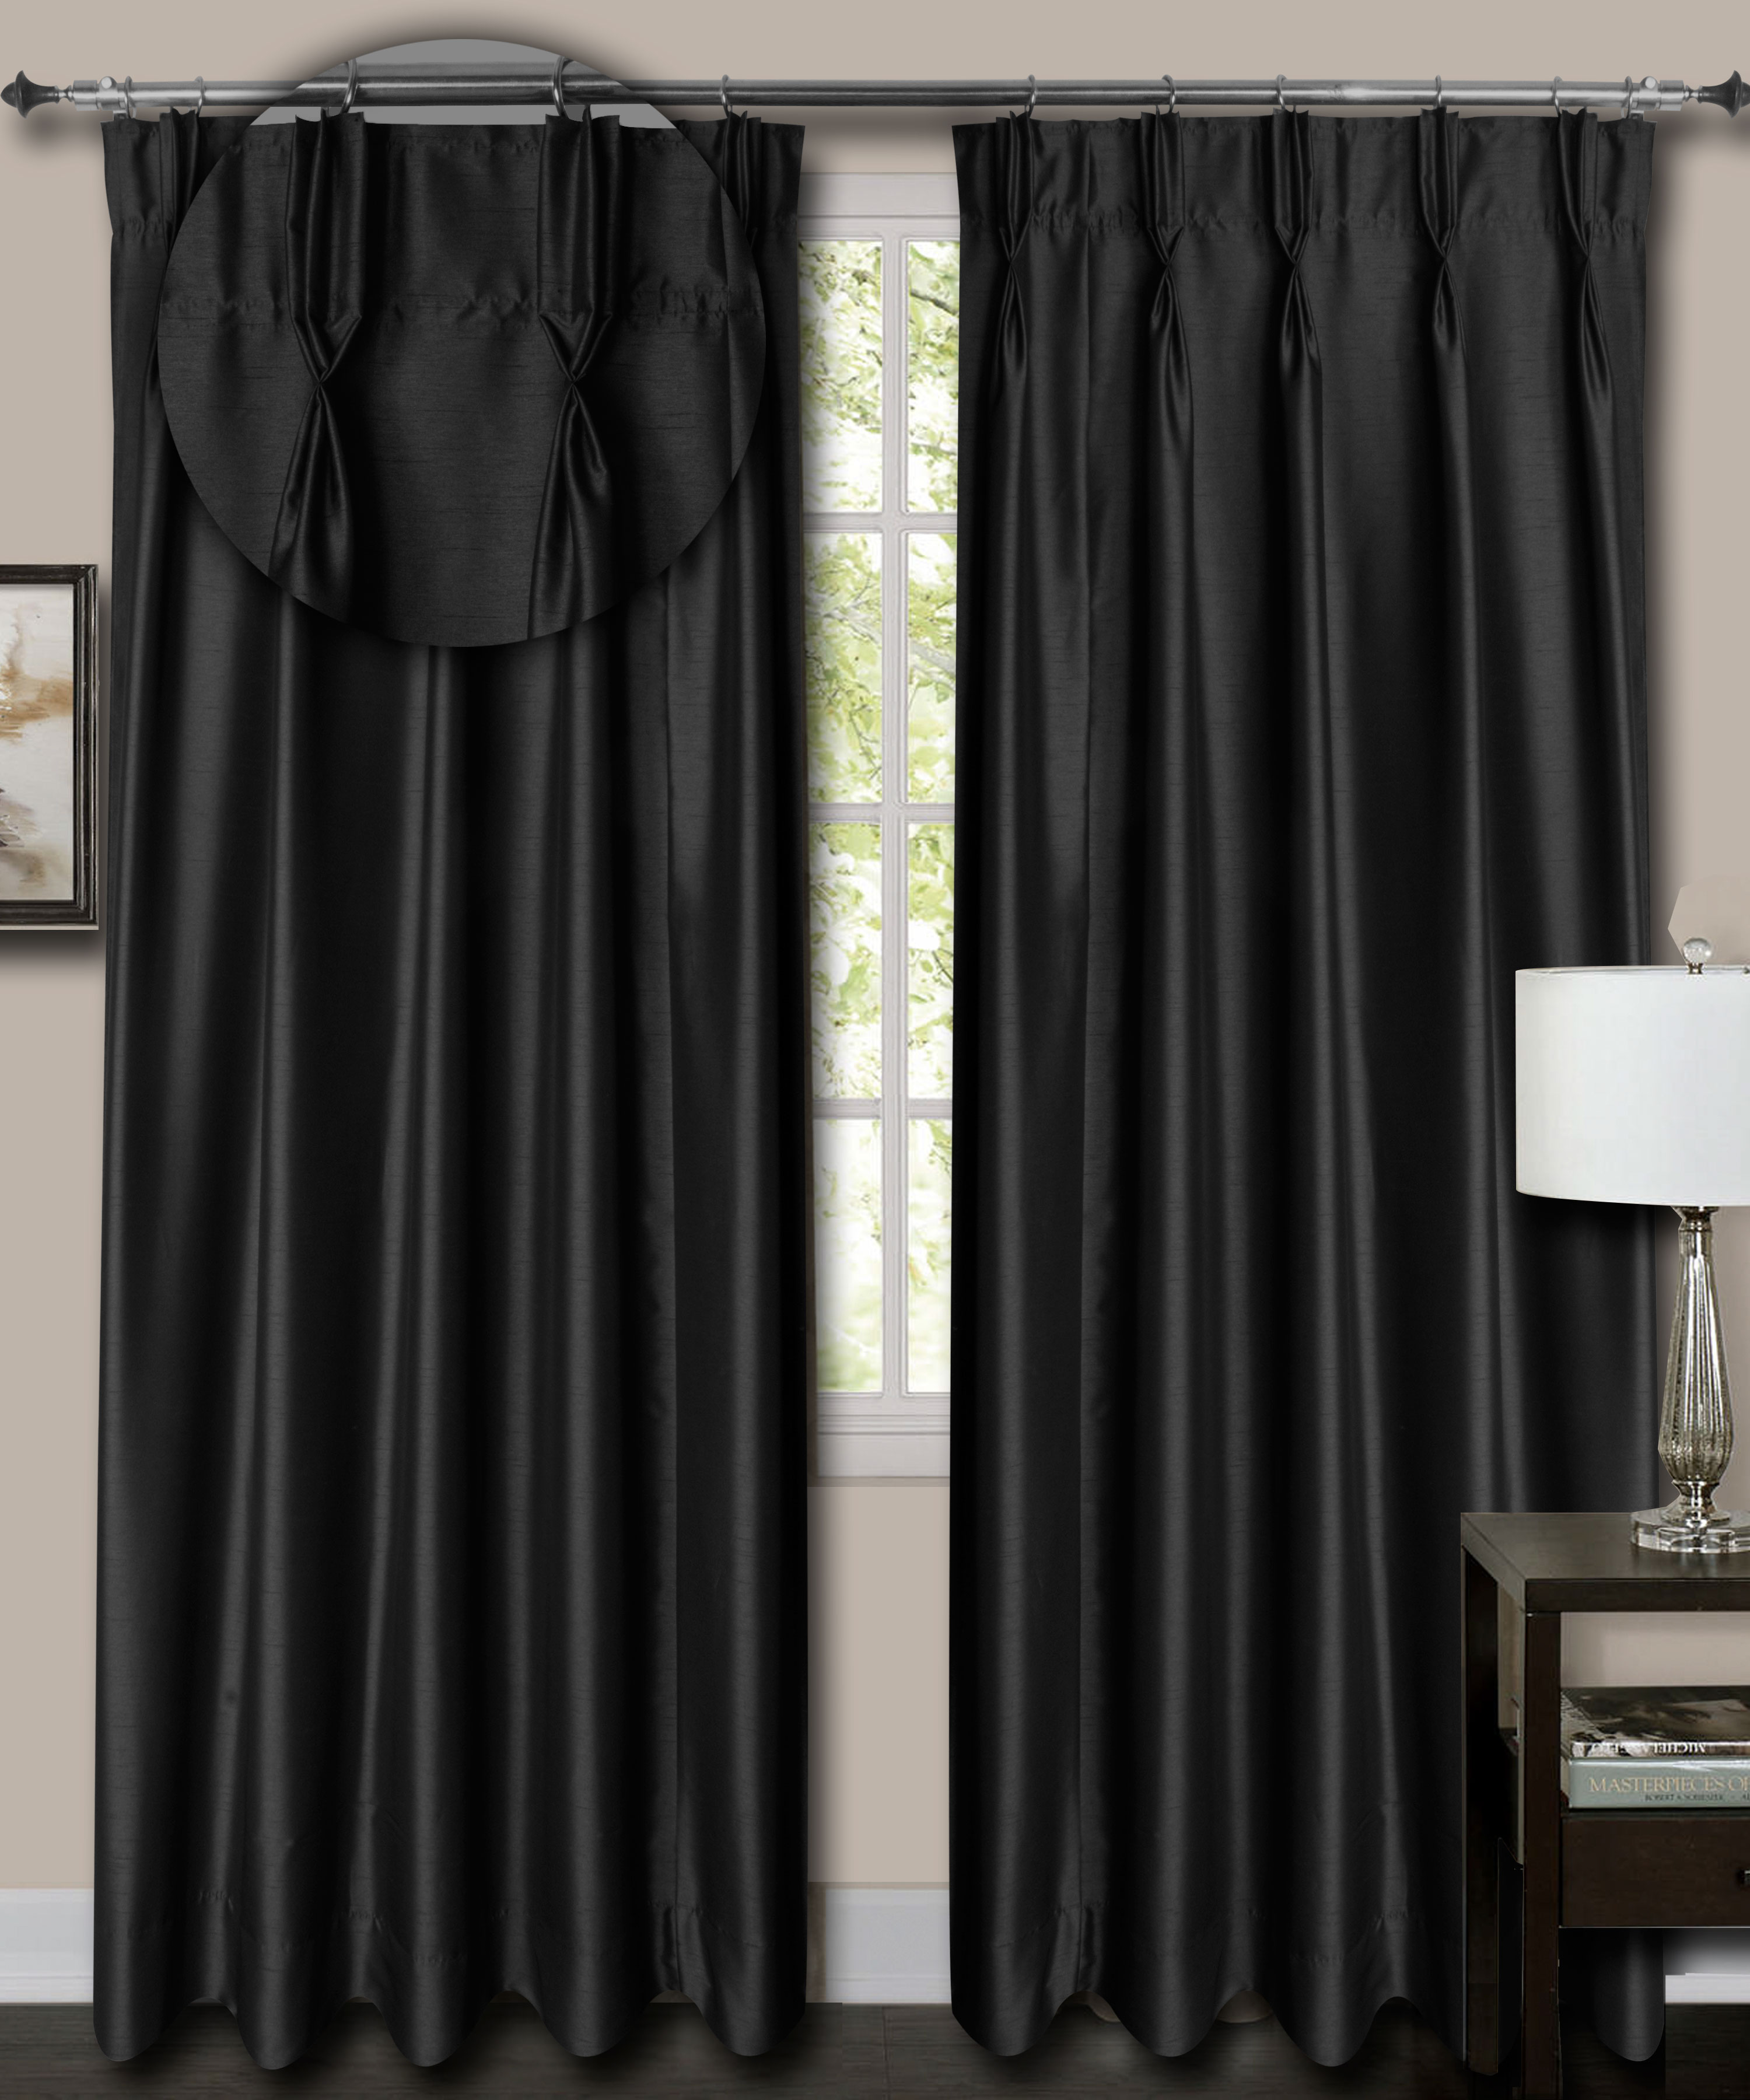 "French Pleat Top Black Faux Silk Dupioni Curtains. (52"" Wide,12 Feet Long,Thick Lining)"